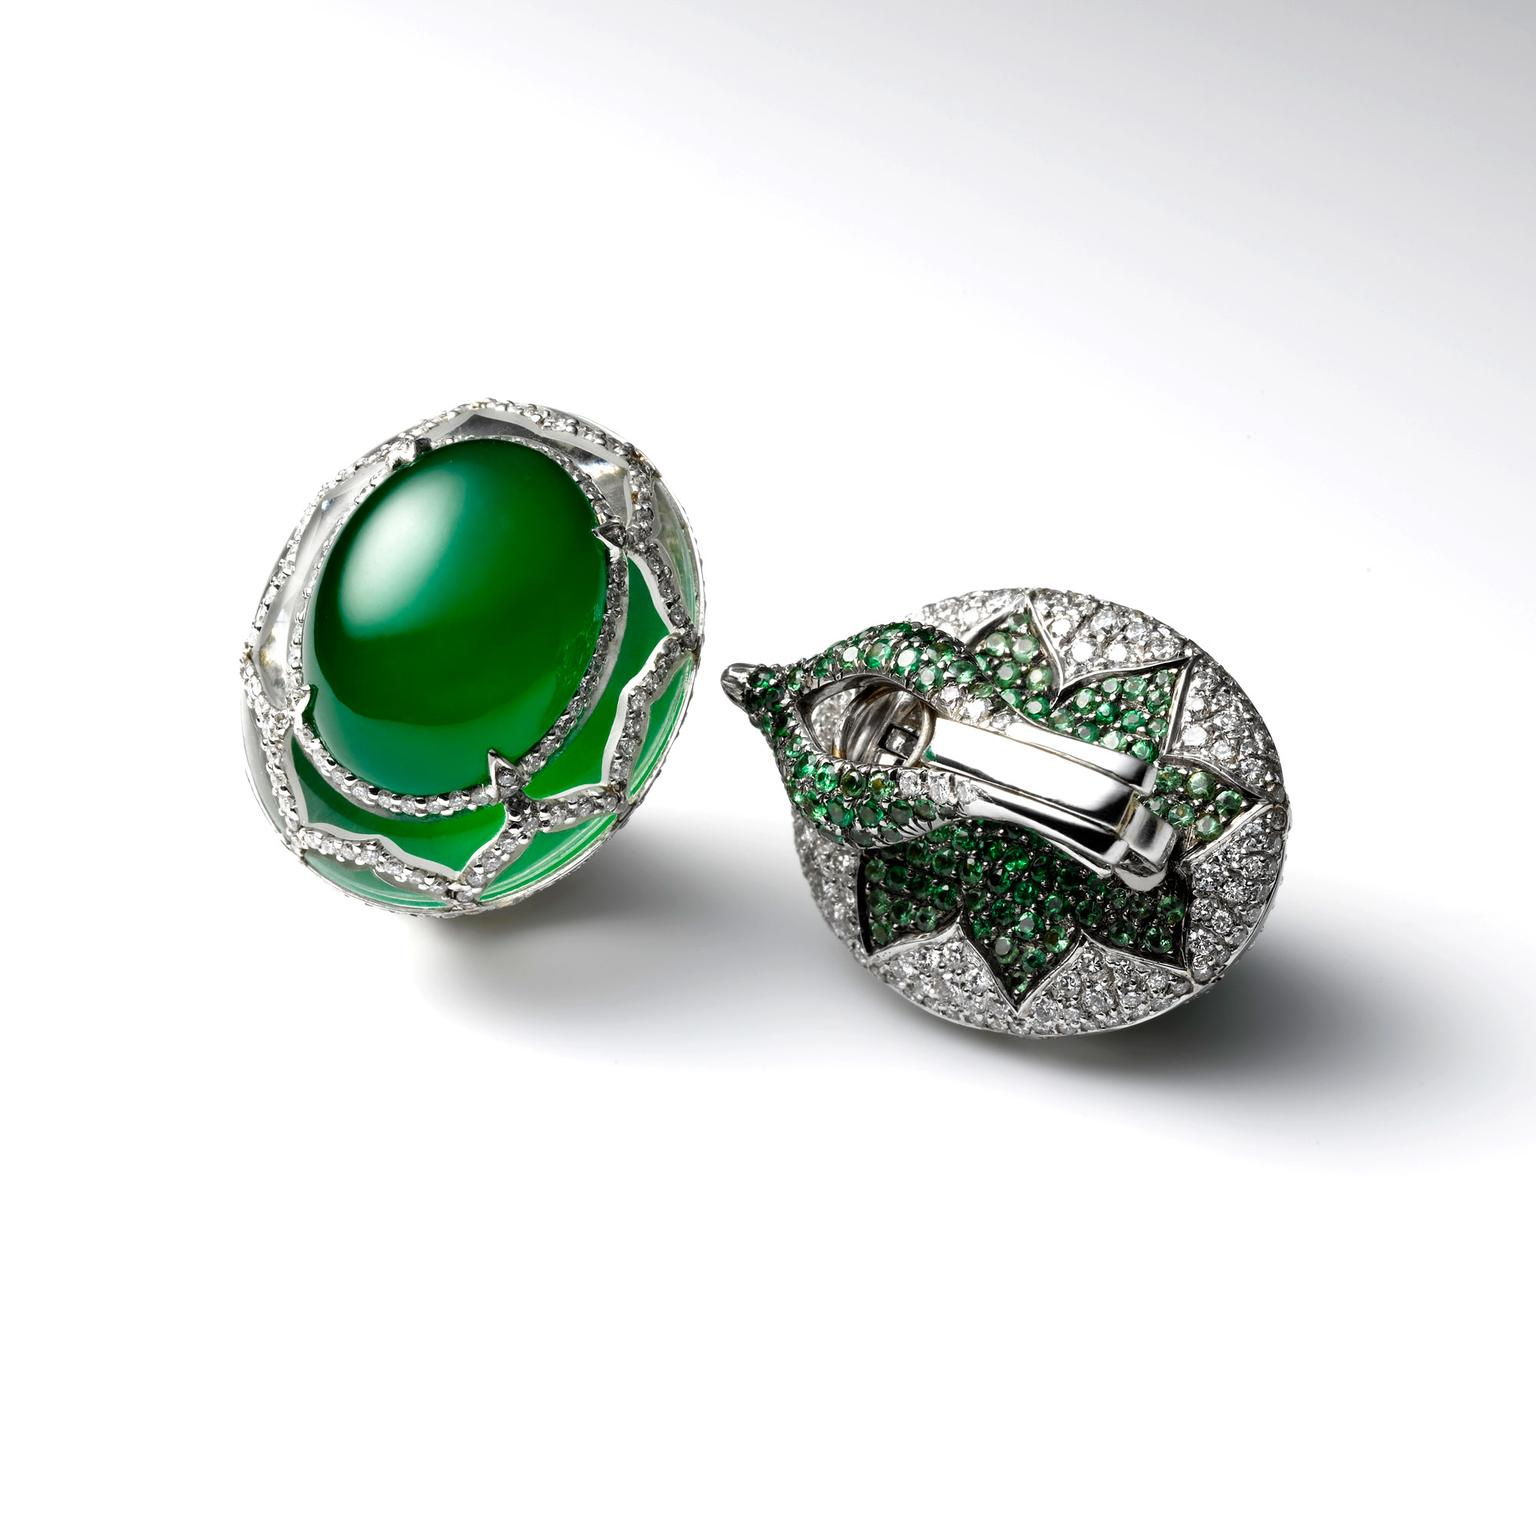 Samuel Kung jade earrings